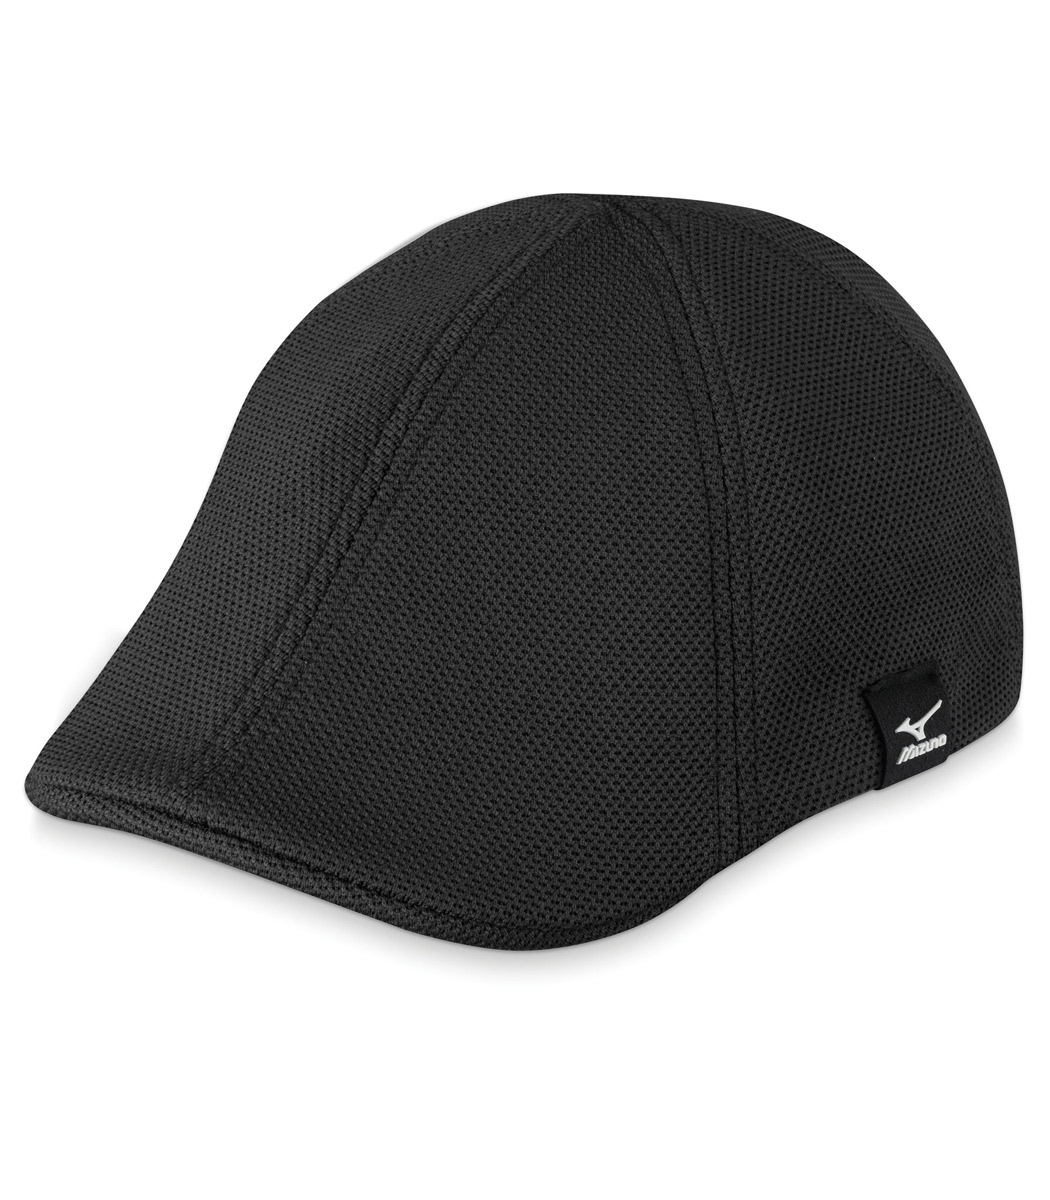 Very comfortable, stylish and warm slouch beanie hat. This stylish hat can in fact be used all year round and is a must have fashion accessory.